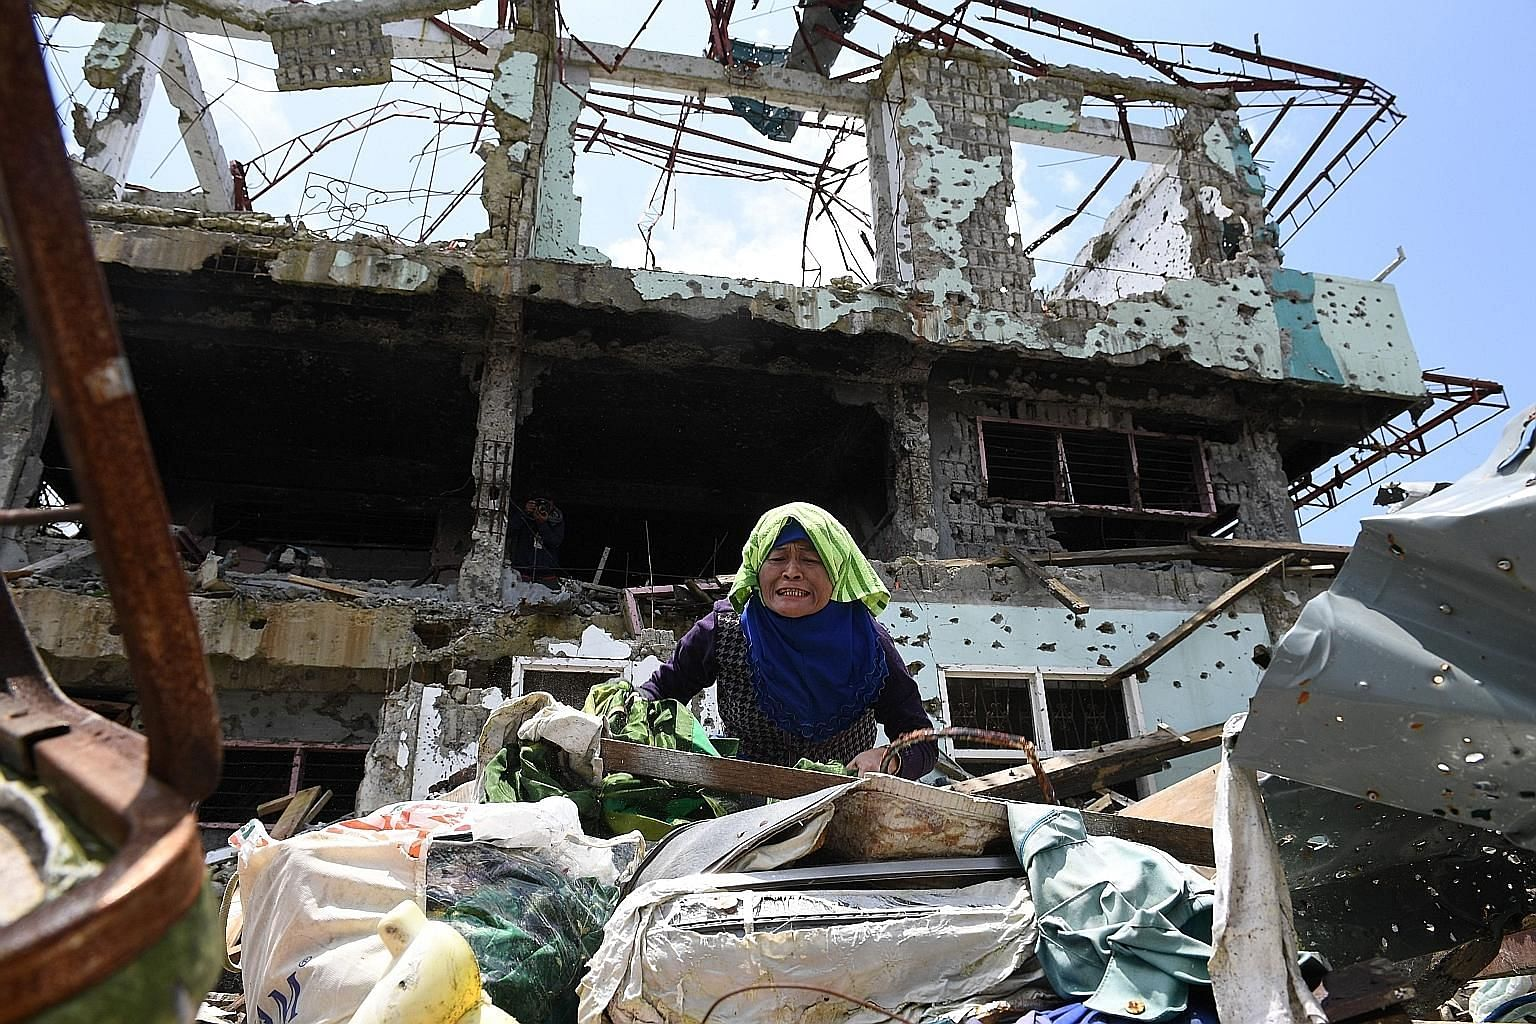 An anguished resident trying to collect salvageable belongings from her destroyed house during a visit yesterday to the main battle area in the southern Philippine city of Marawi. After fleeing for their lives nearly a year ago, residents of the batt